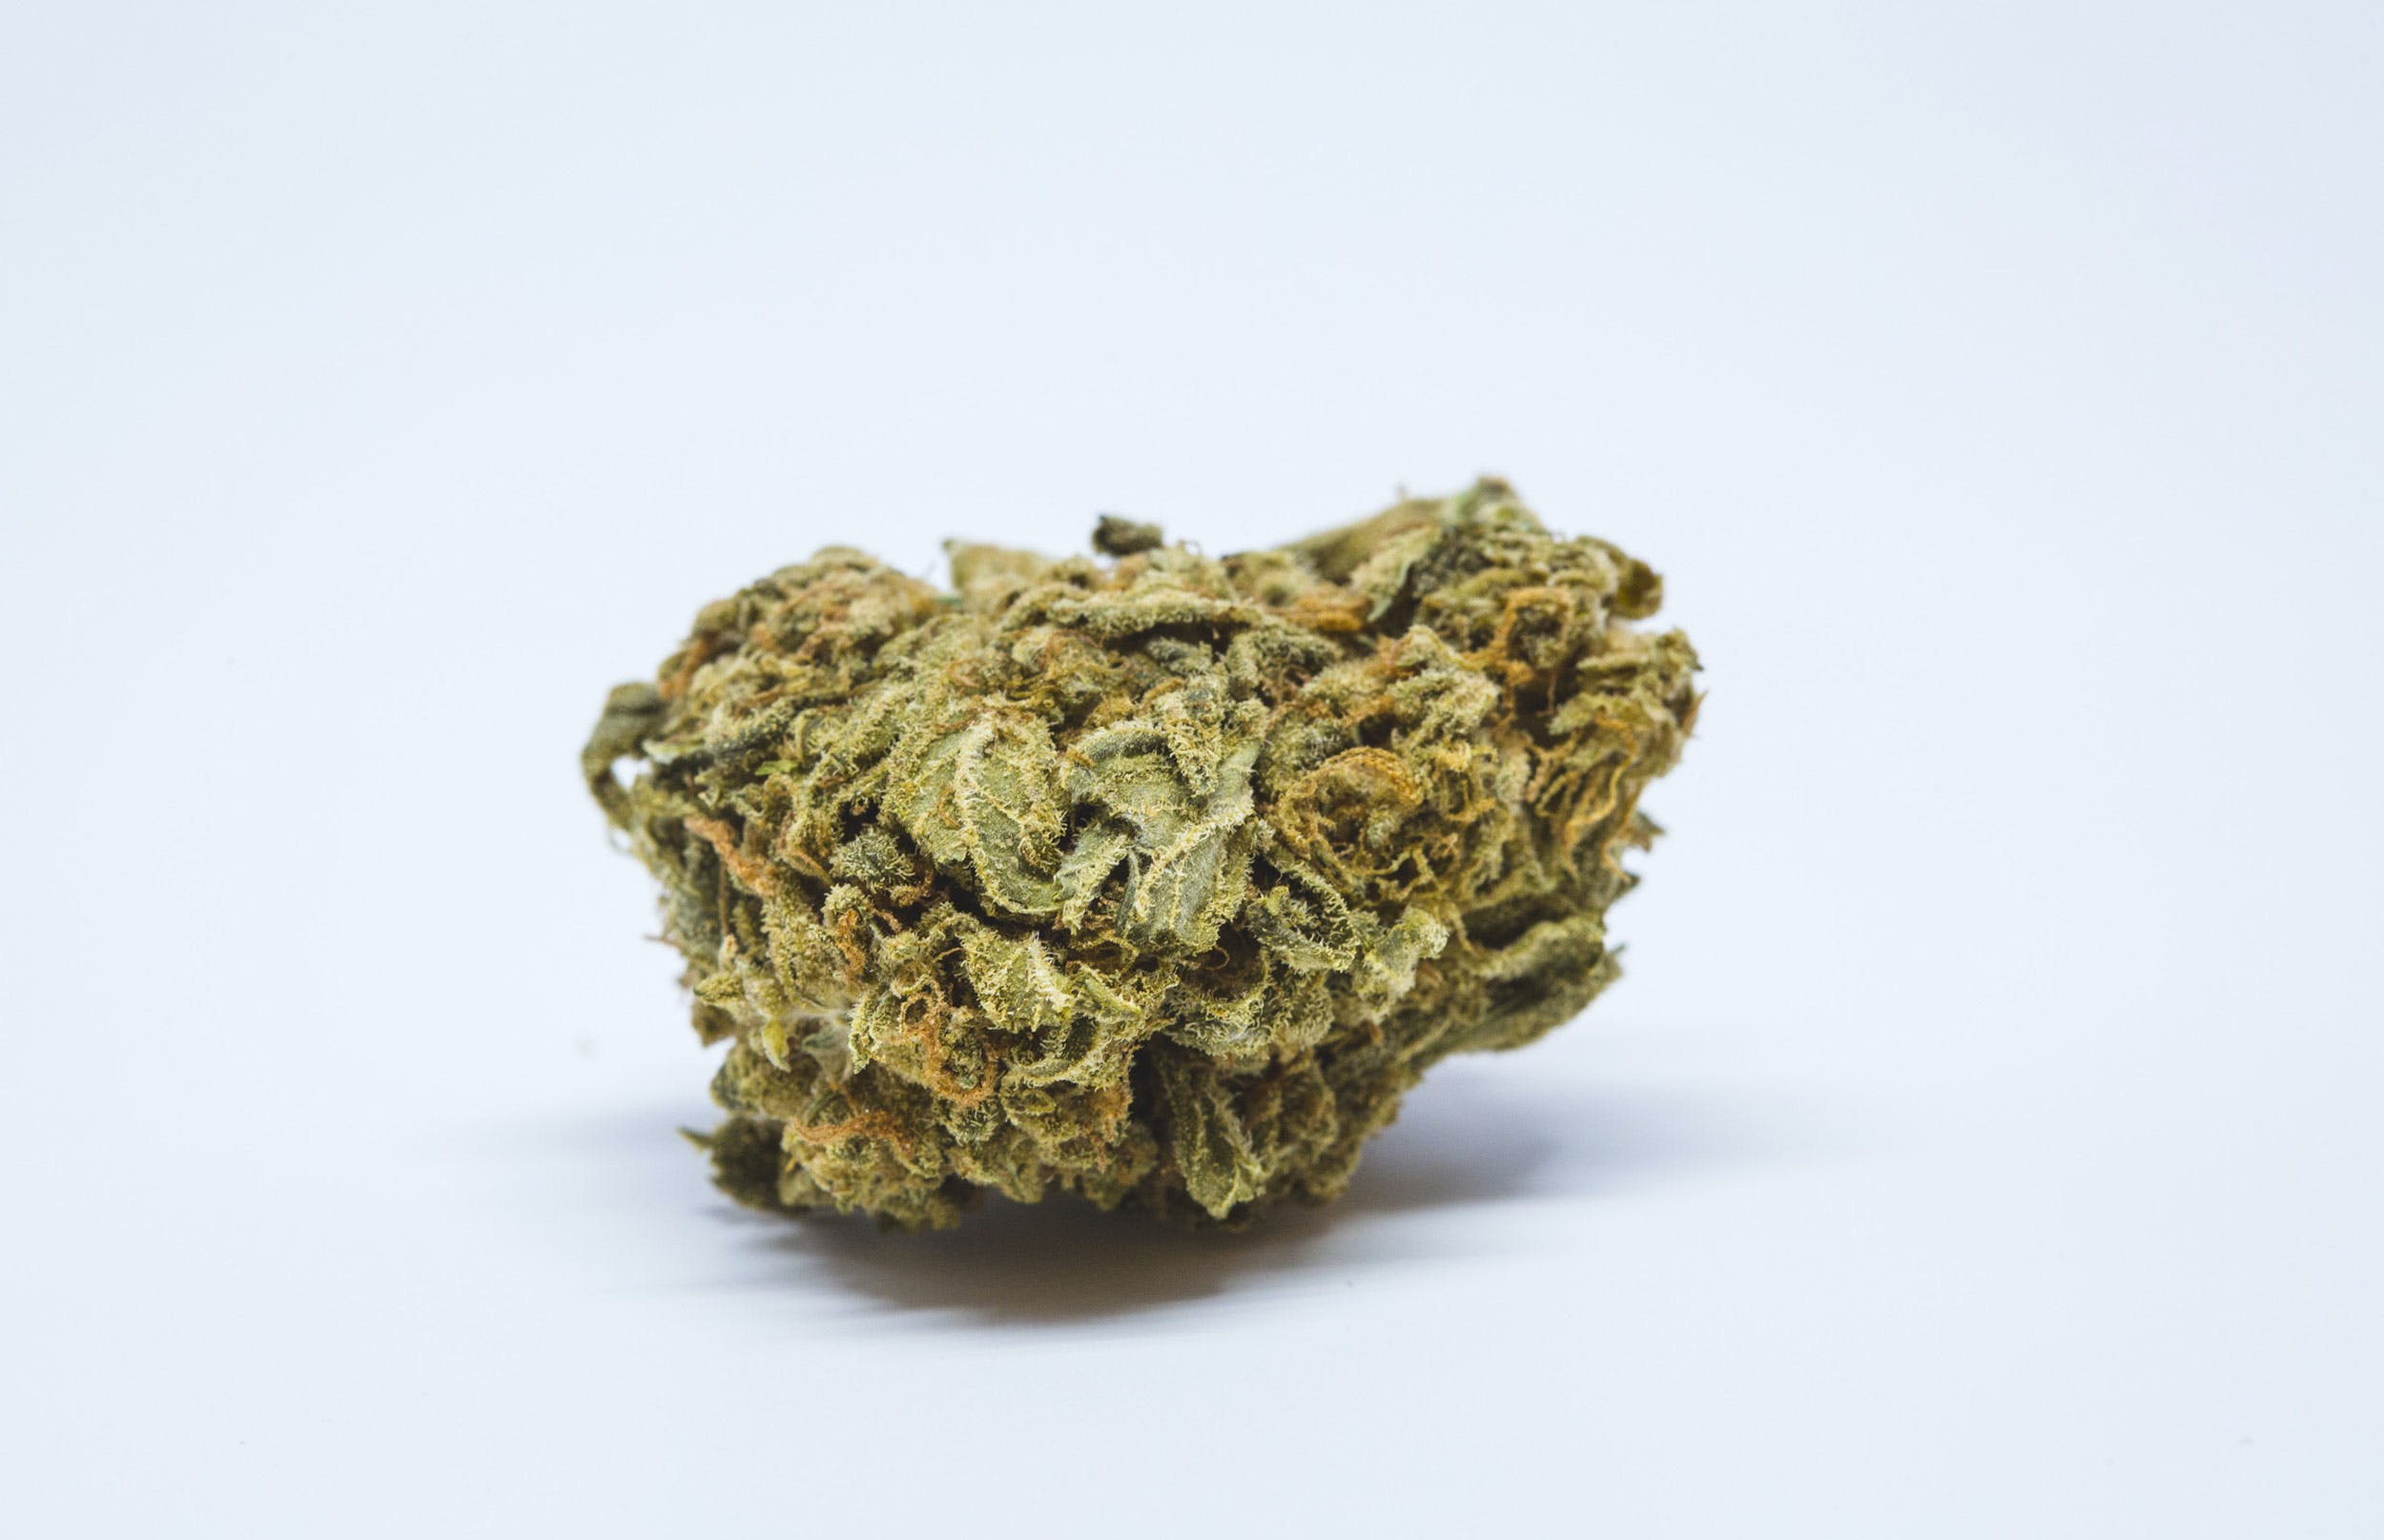 Thin Mint Girl Scout Cookies Hybrid Marijuana Strain 7 Ways To Smoke Weed In Your Apartment On The Sly